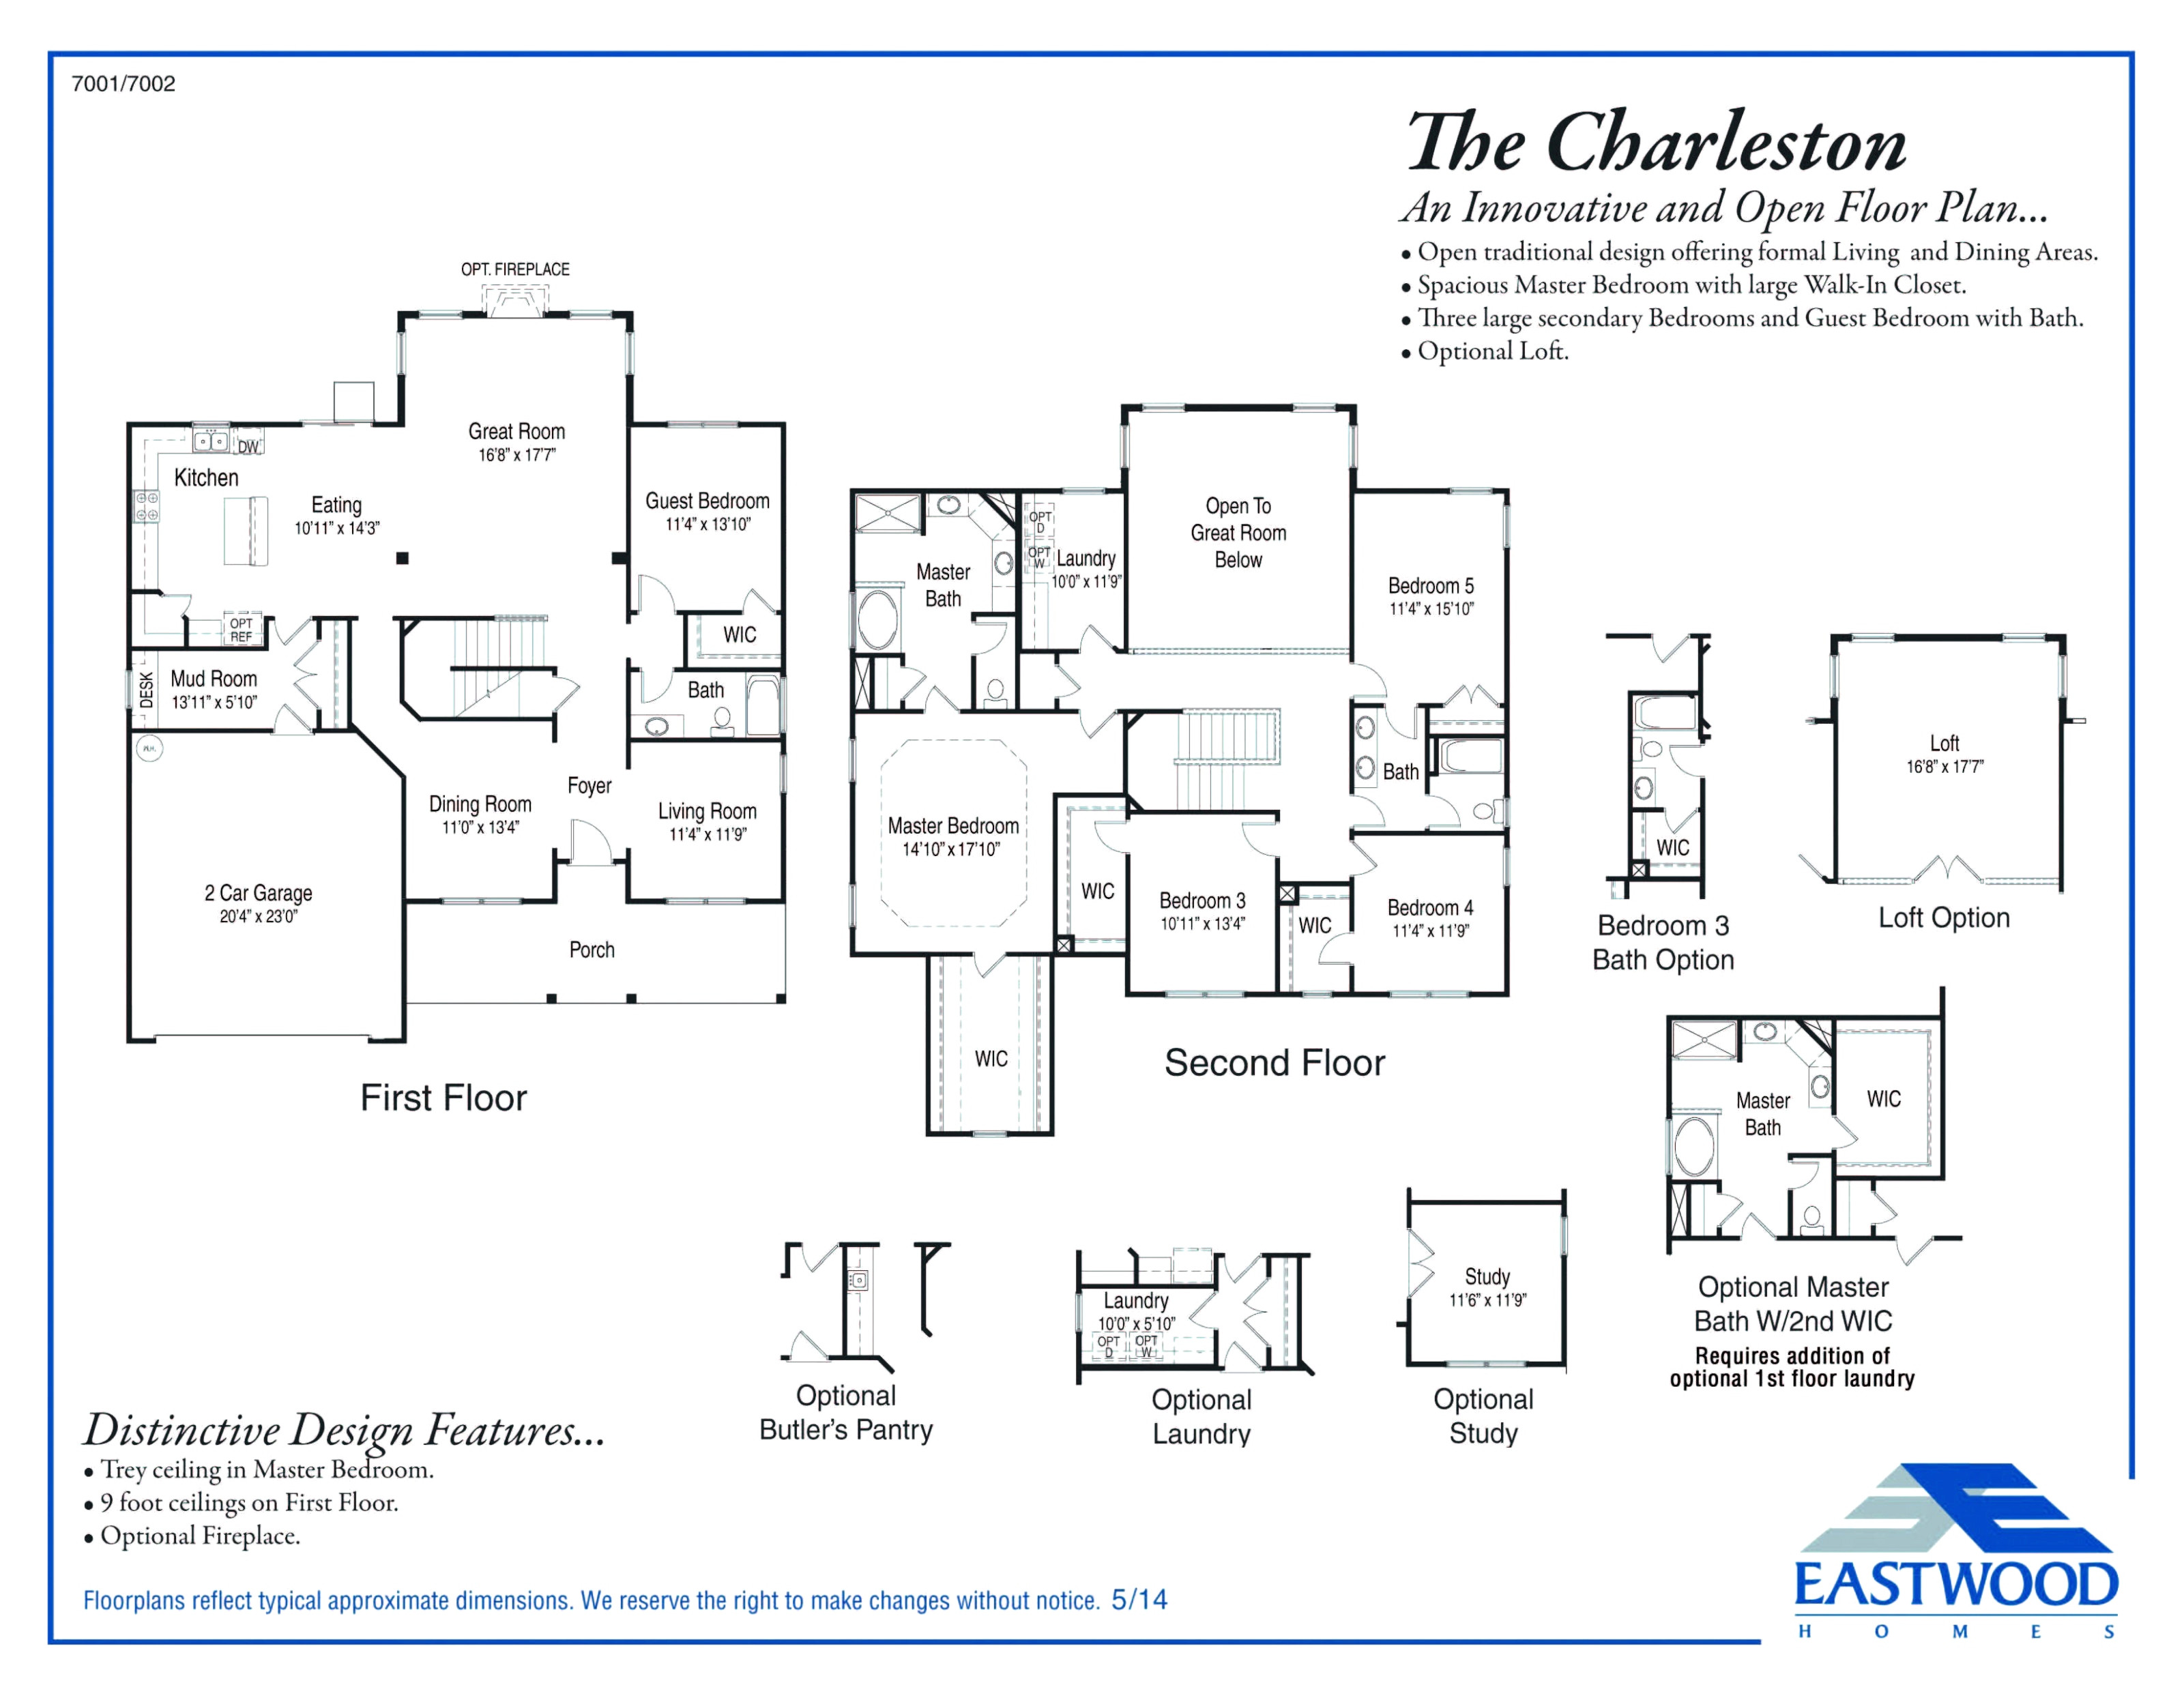 eastwood homes floor plans